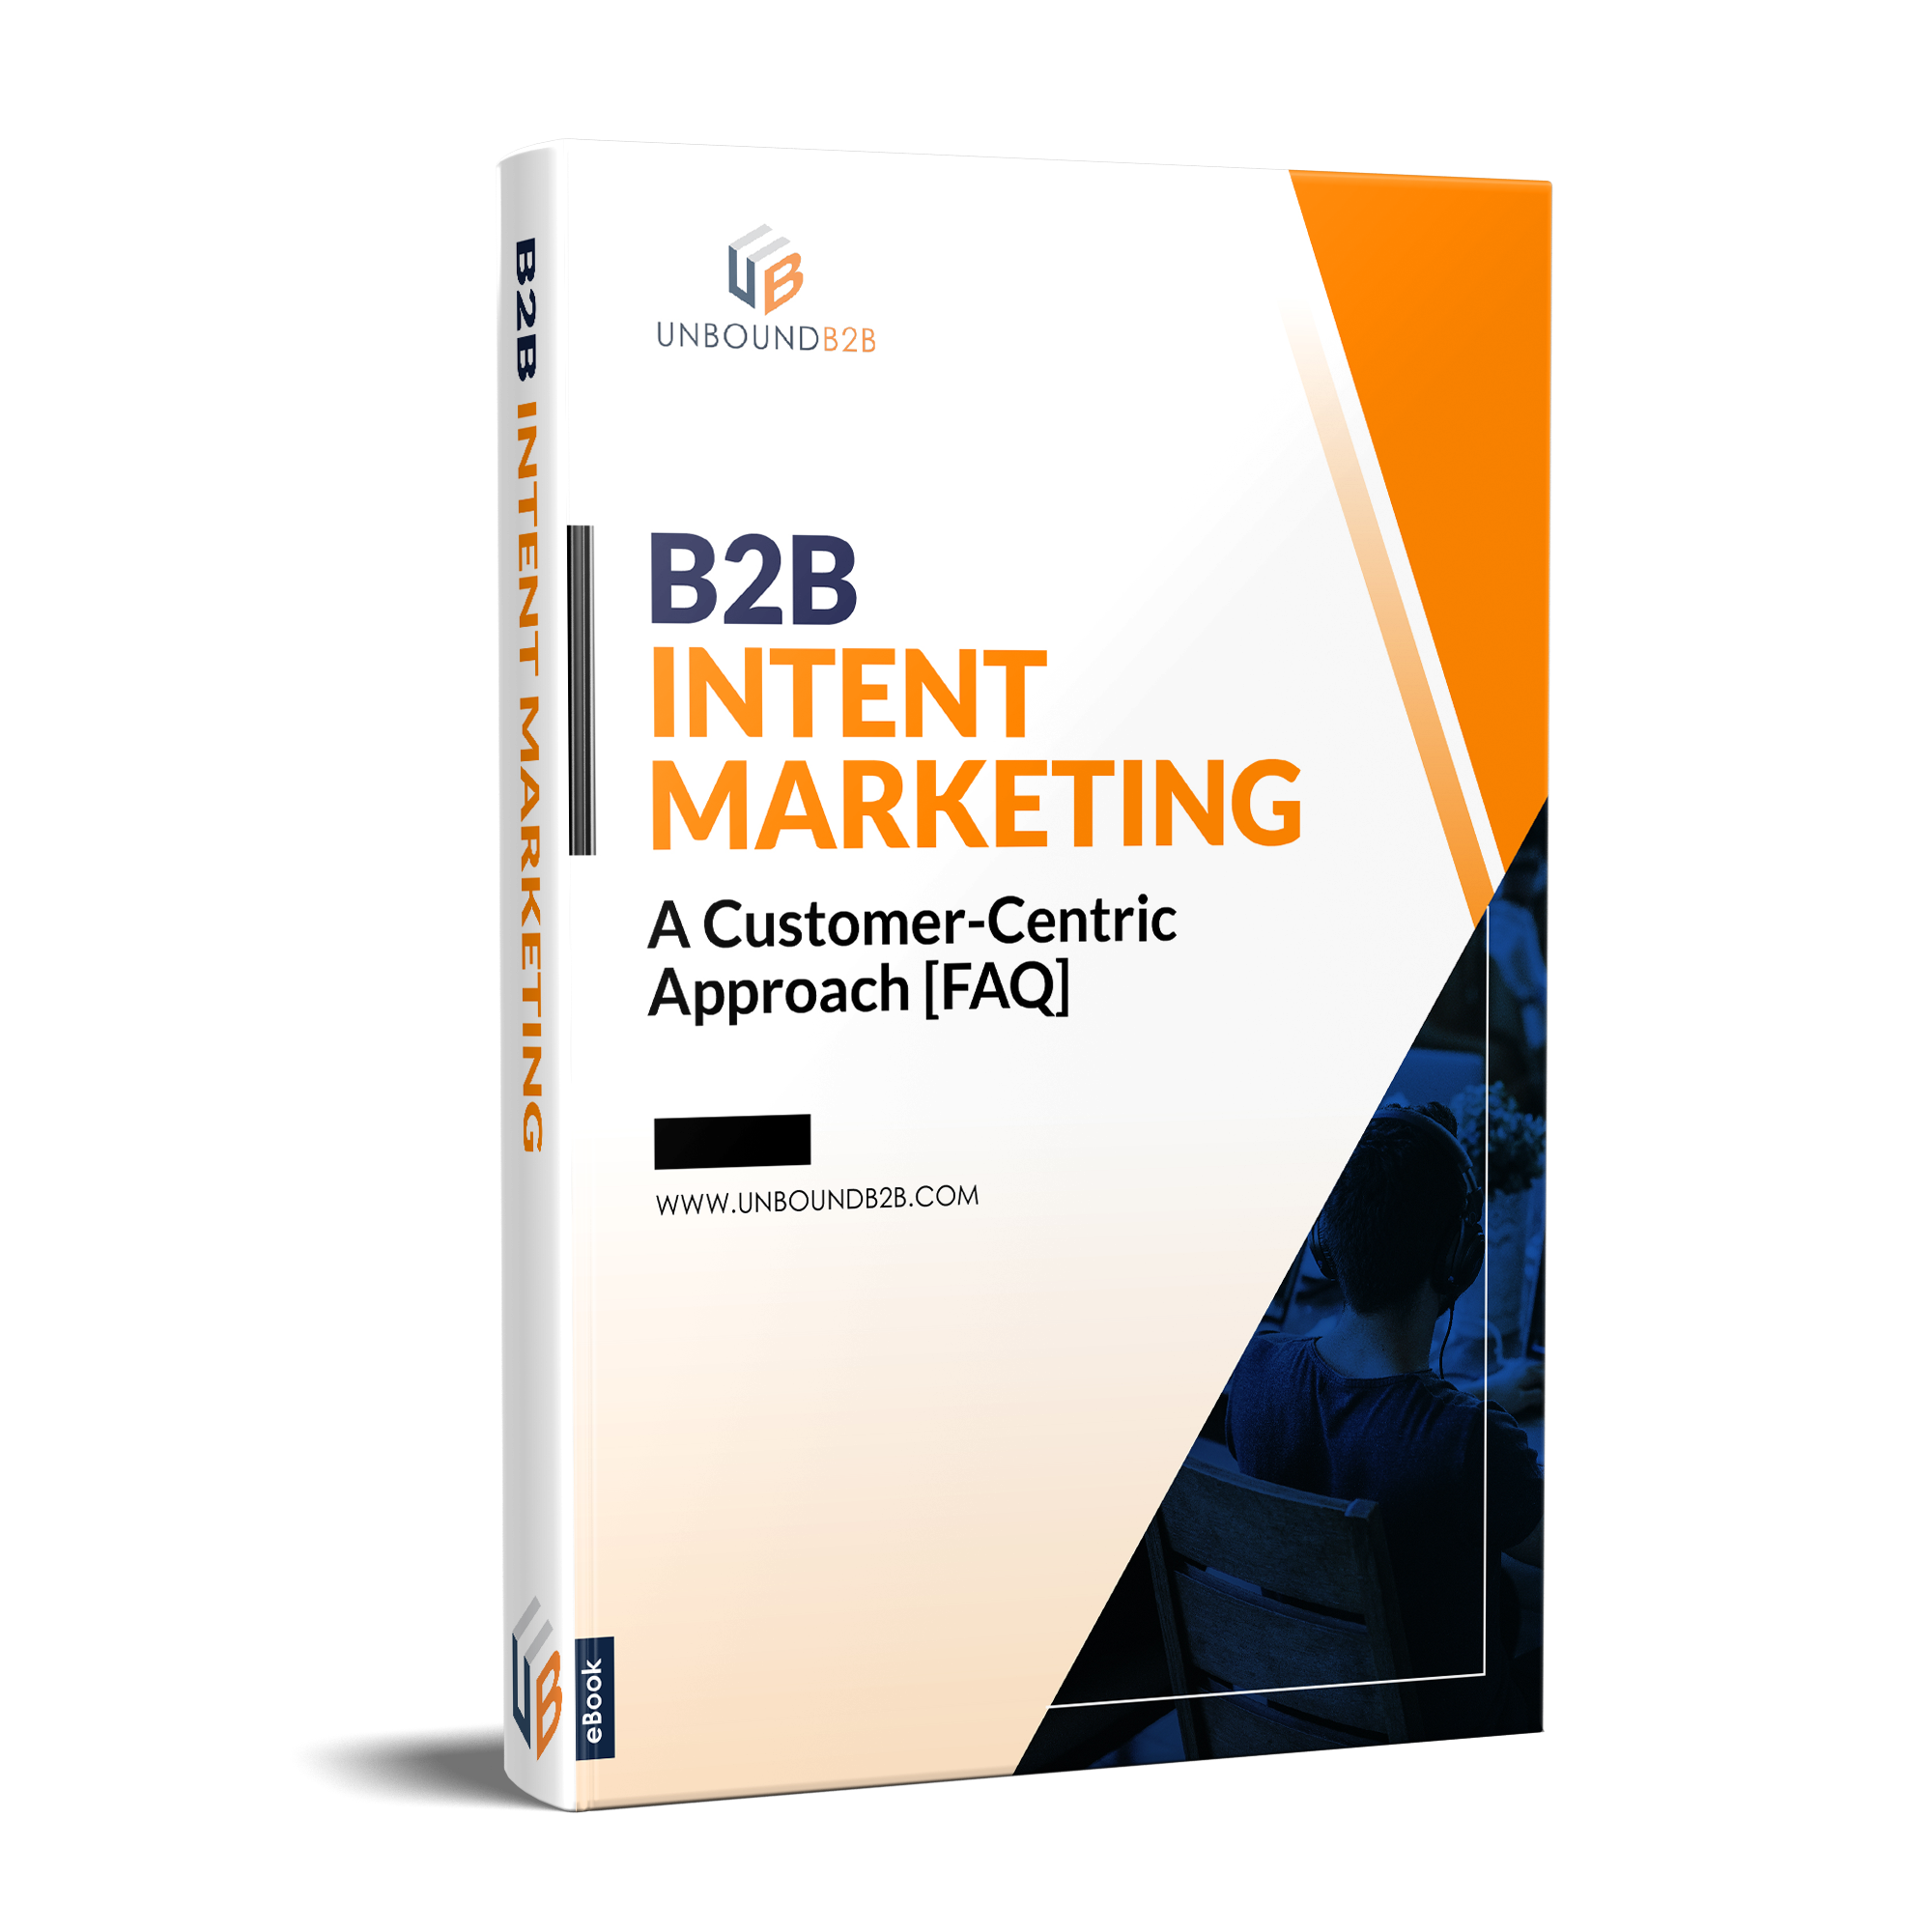 B2B Intent Marketing